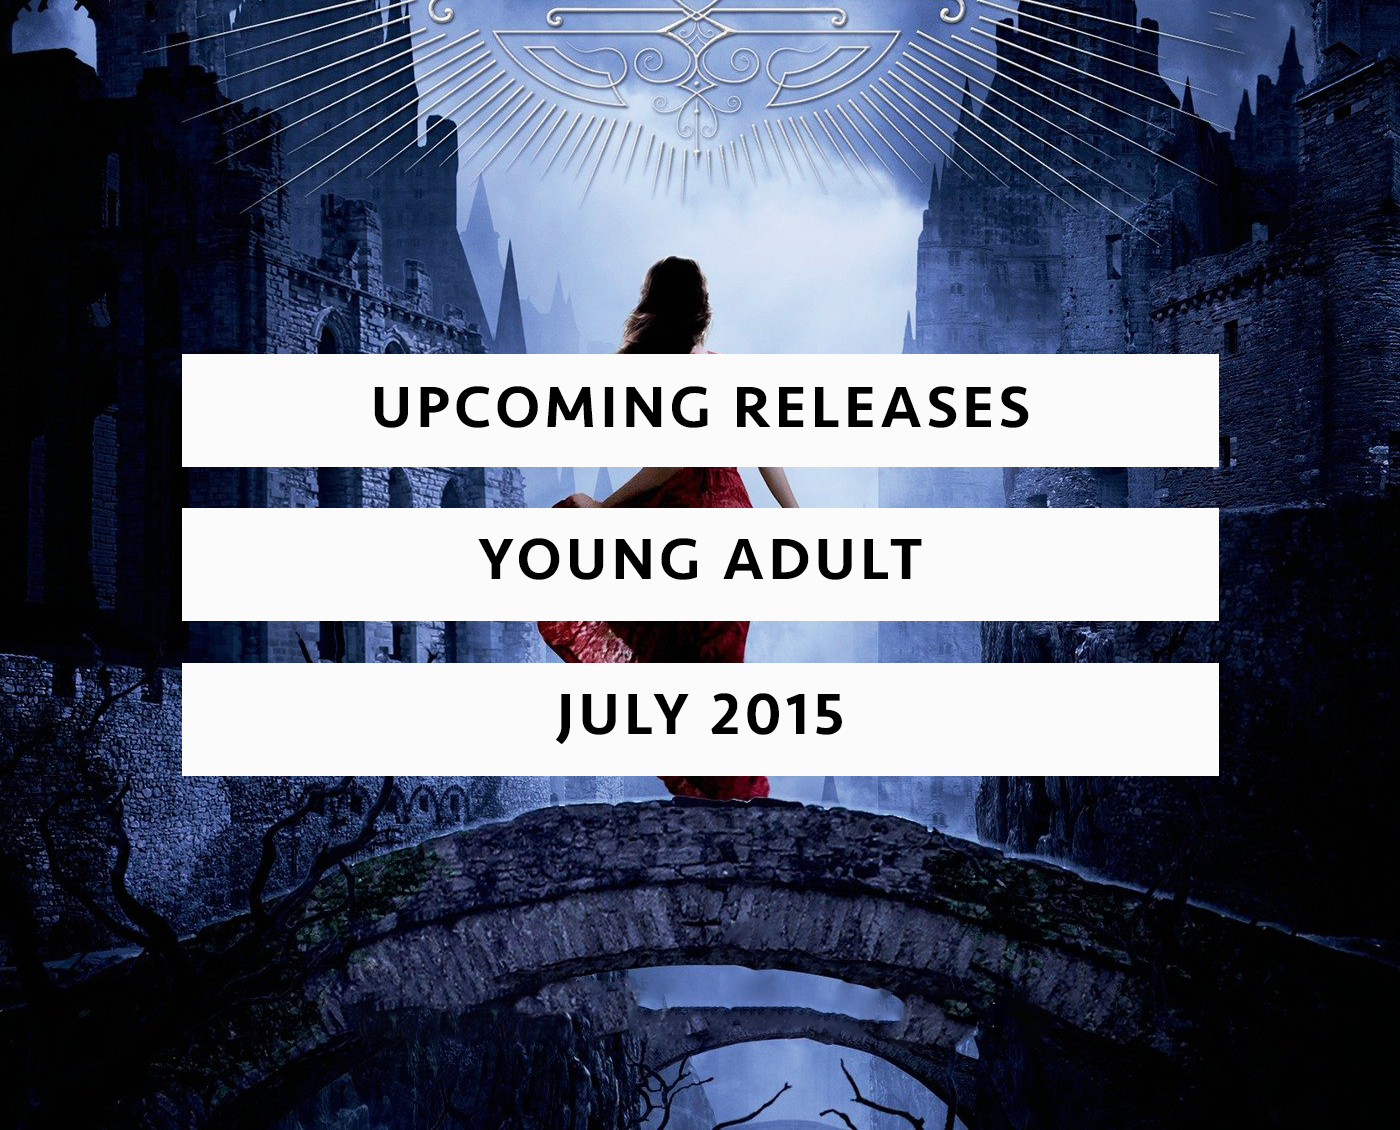 Upcoming Releases July 2015